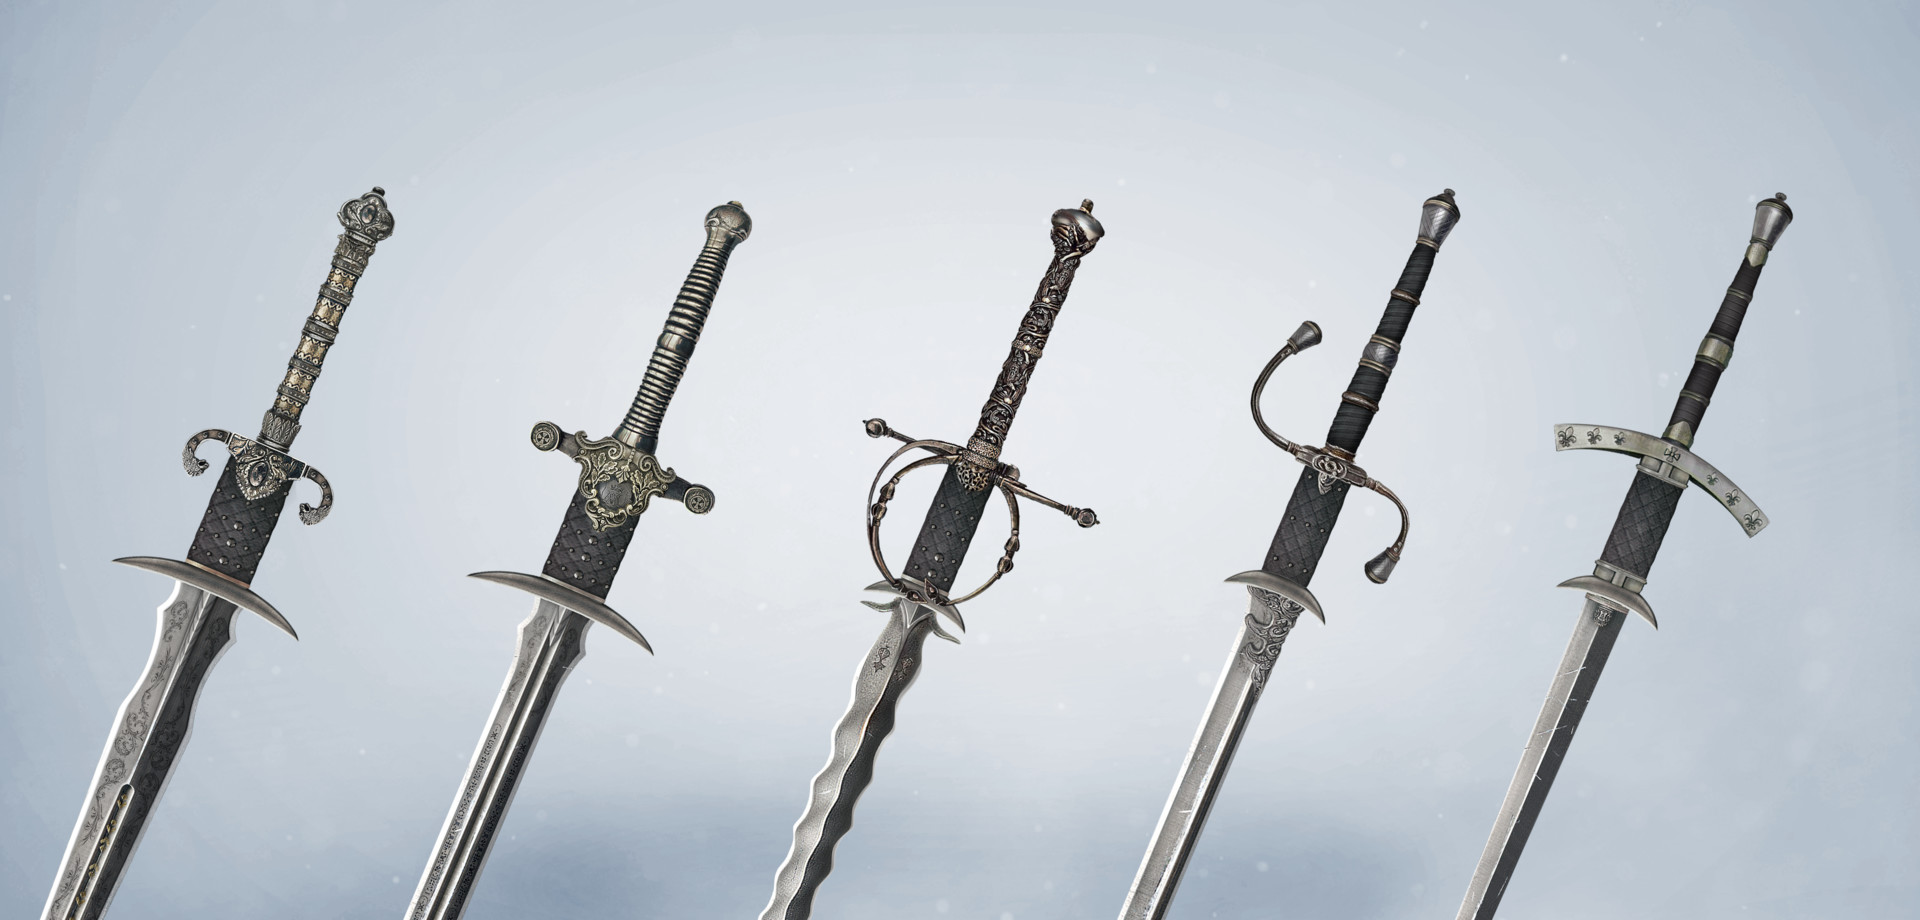 George k swords progress main line behance 4